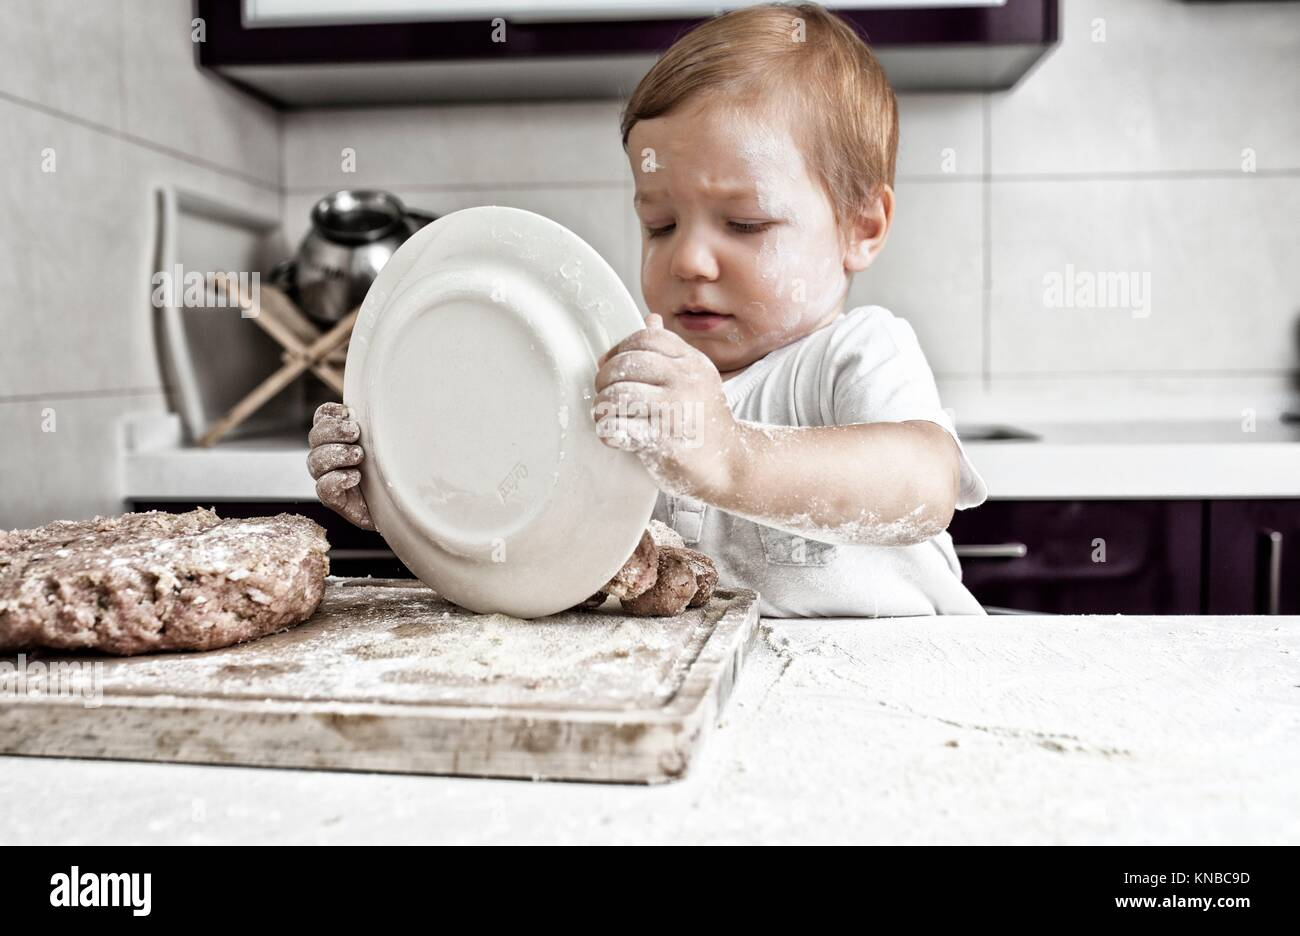 Baby boy preparing meatballs. He is dumping the plate. - Stock Image